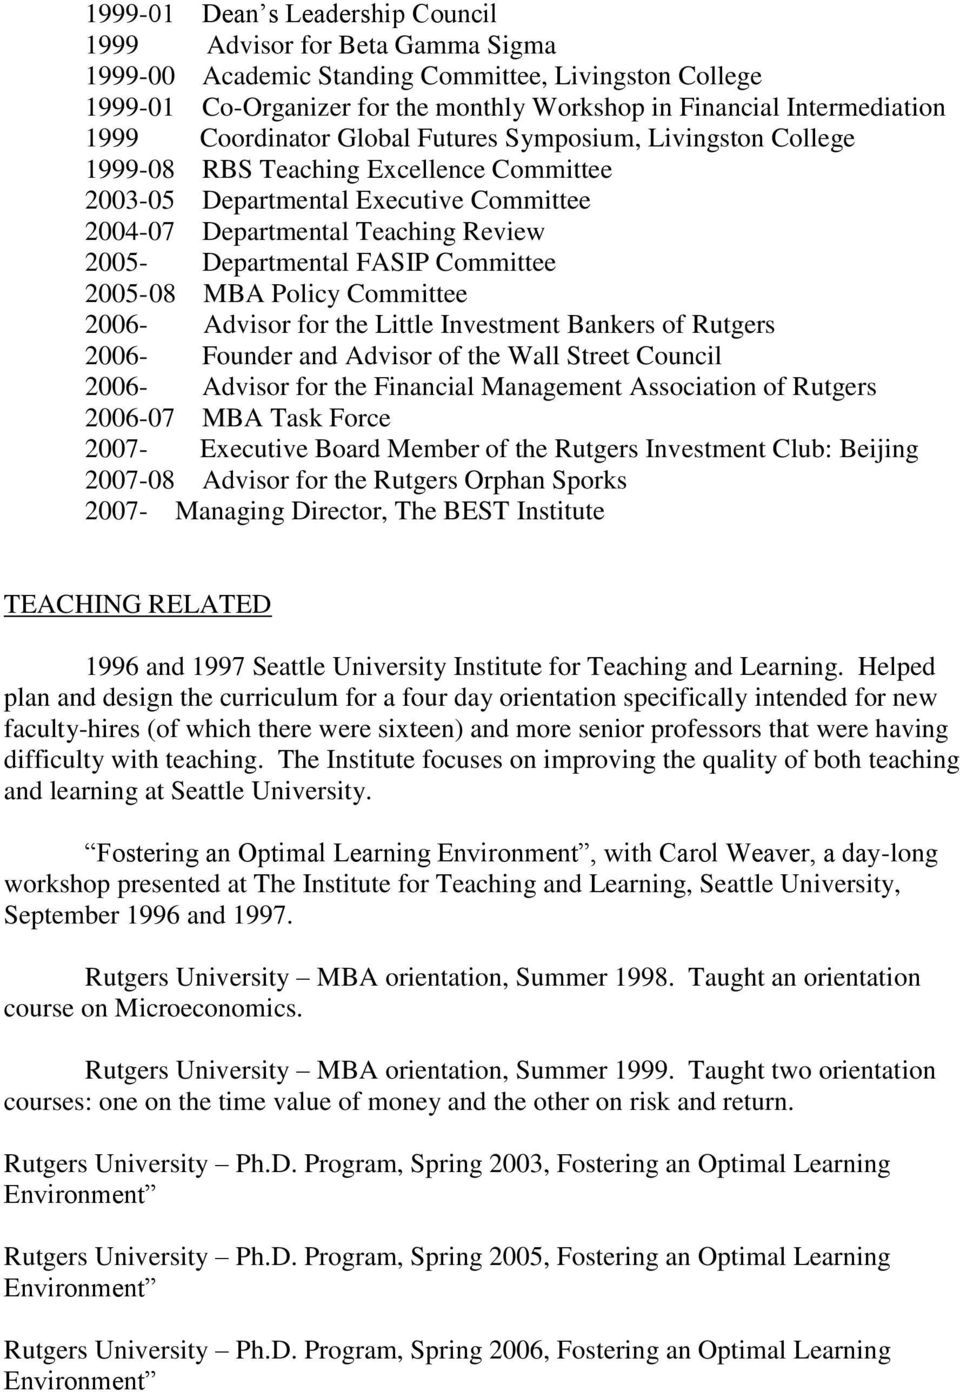 Departmental FASIP Committee 2005-08 MBA Policy Committee 2006- Advisor for the Little Investment Bankers of Rutgers 2006- Founder and Advisor of the Wall Street Council 2006- Advisor for the